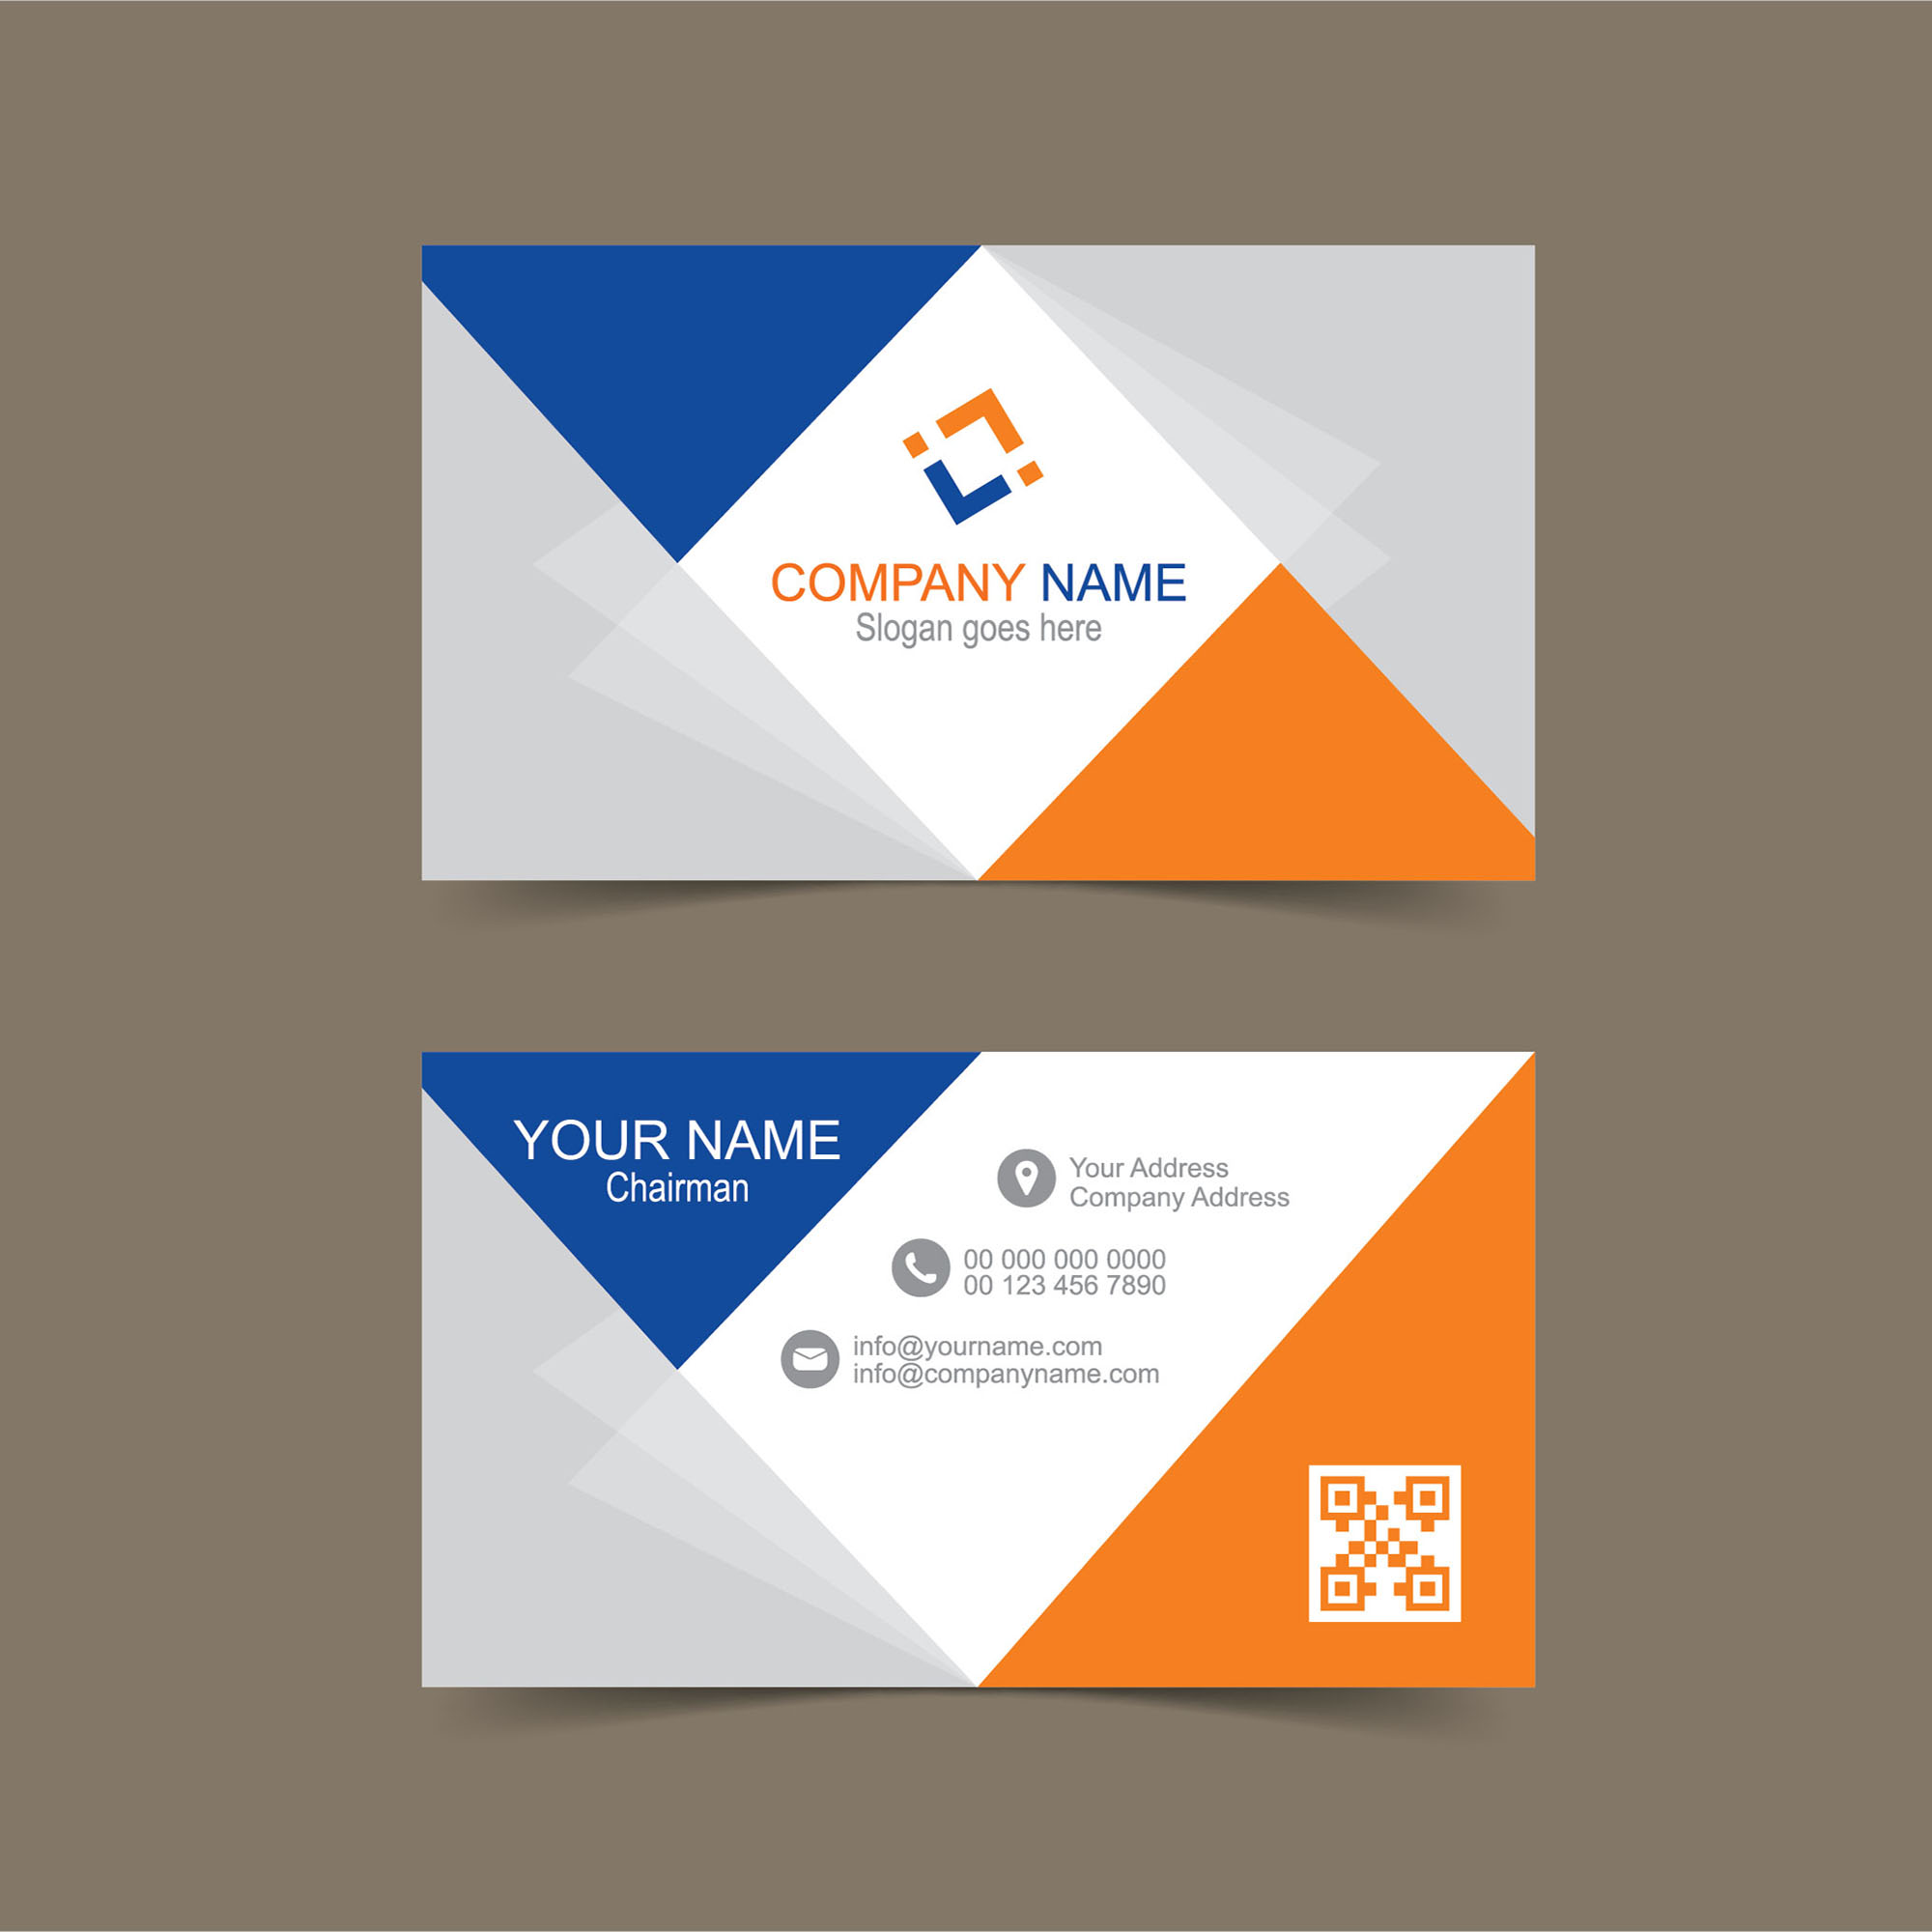 Free Business Card Template For Illustrator Wisxicom - Free business card layout template